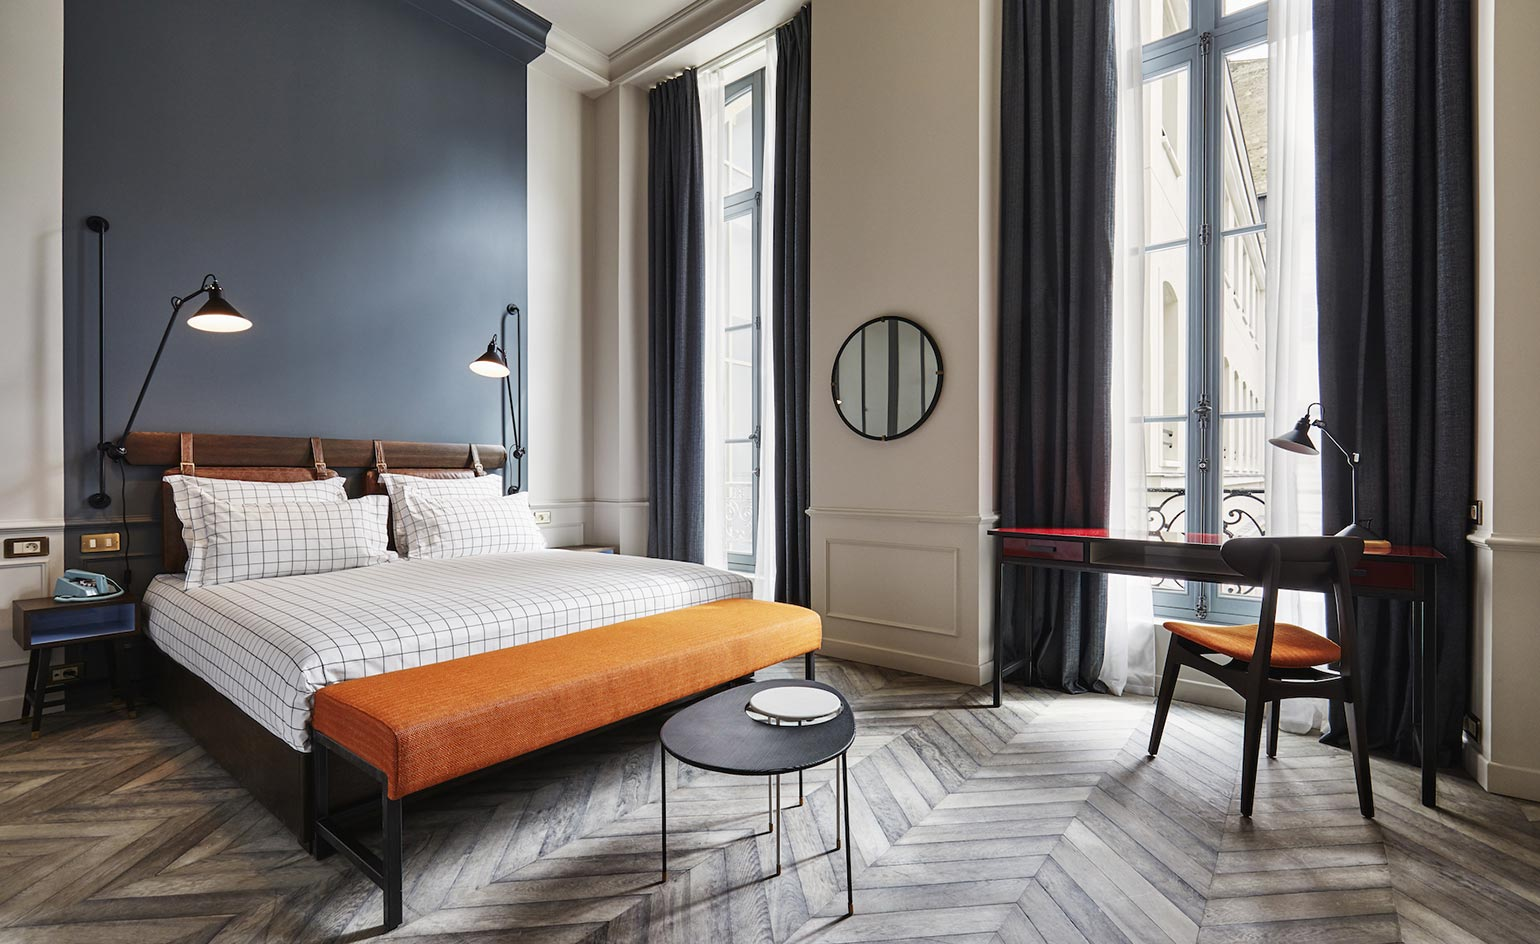 The hoxton hotel review paris france wallpaper for Design hotels france